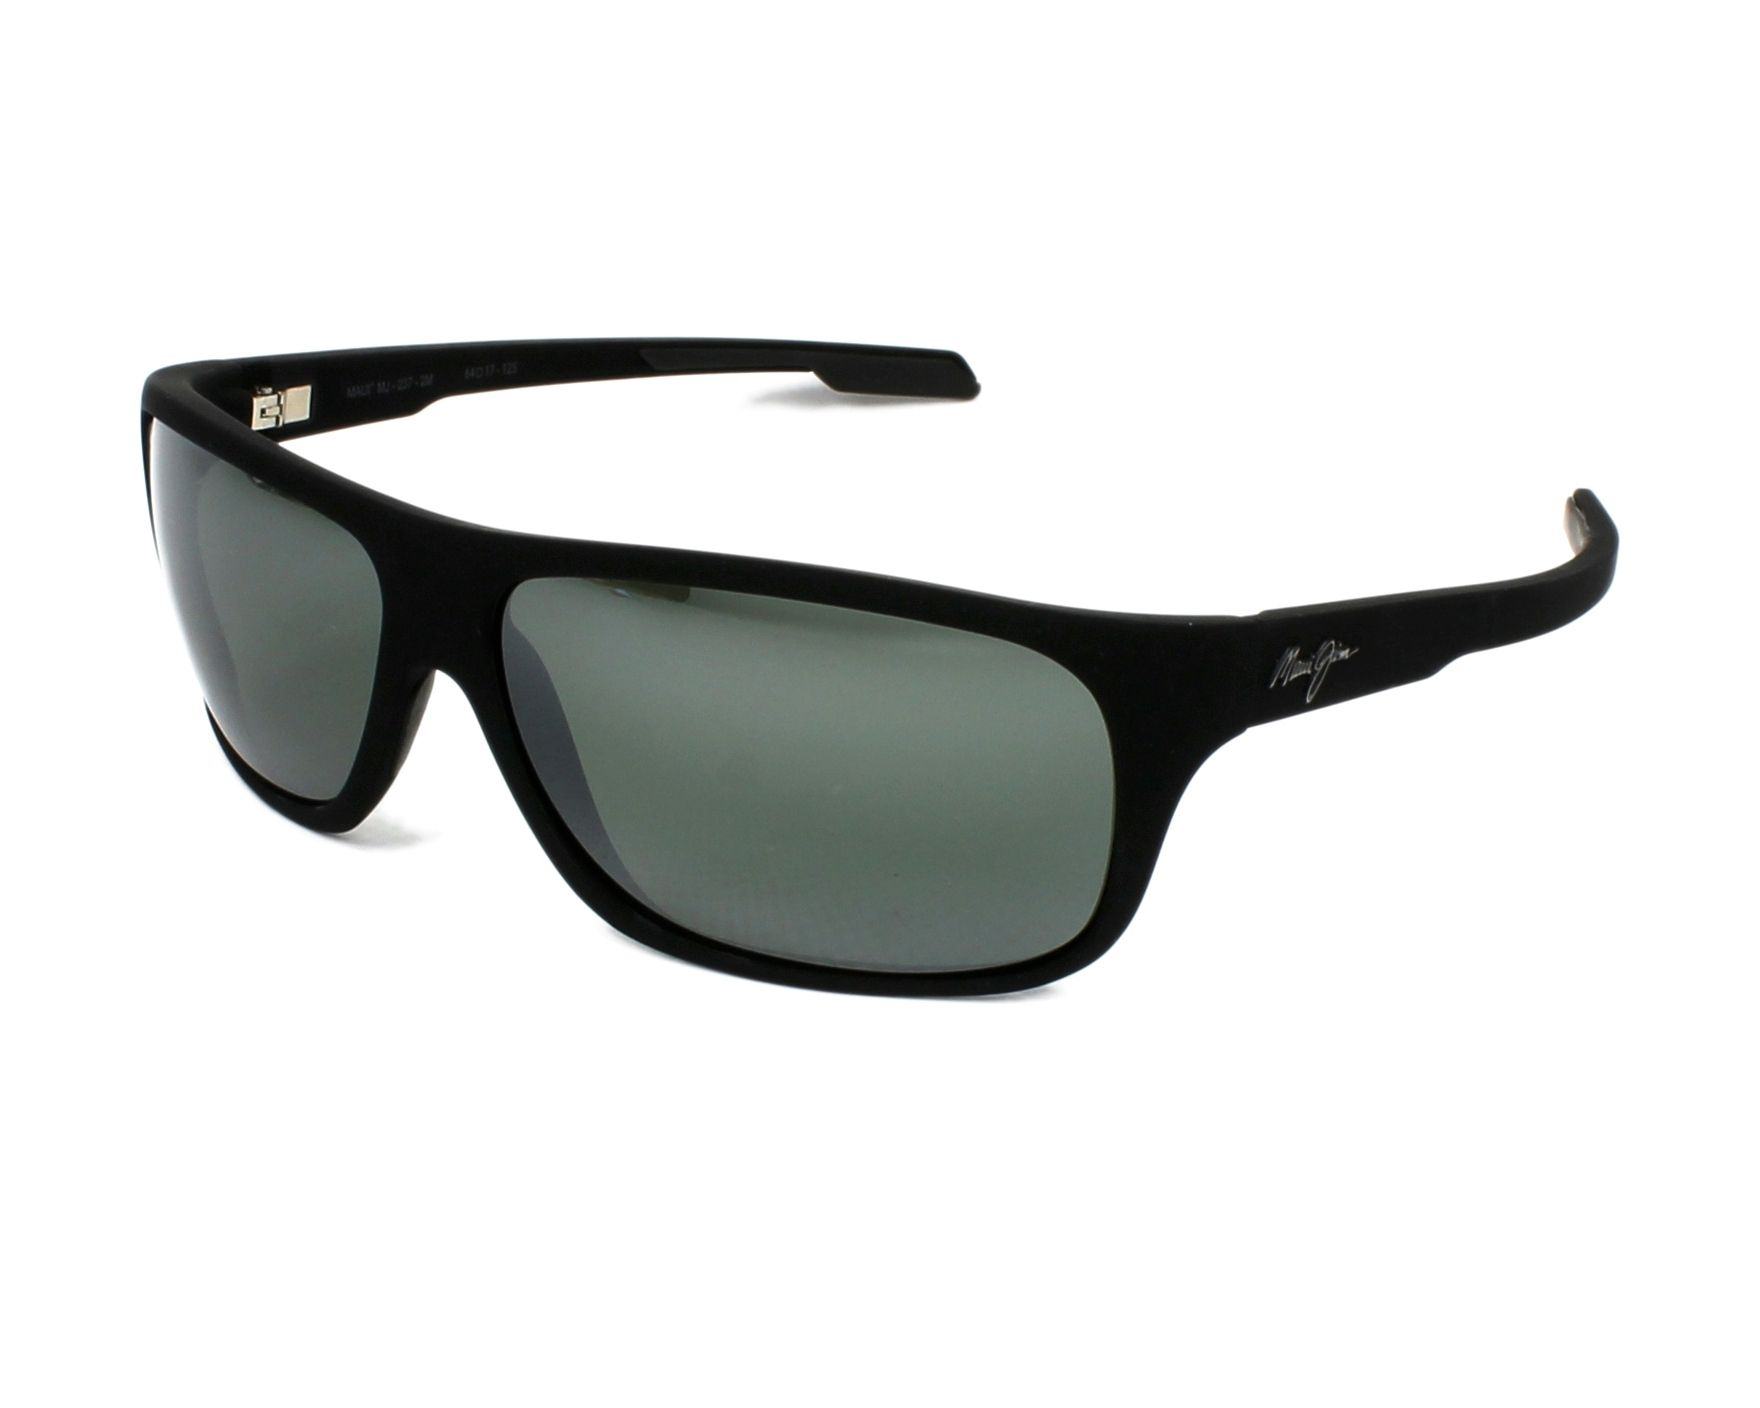 ec8681e6059 Sunglasses Maui Jim 237 2M 64-17 Black profile view